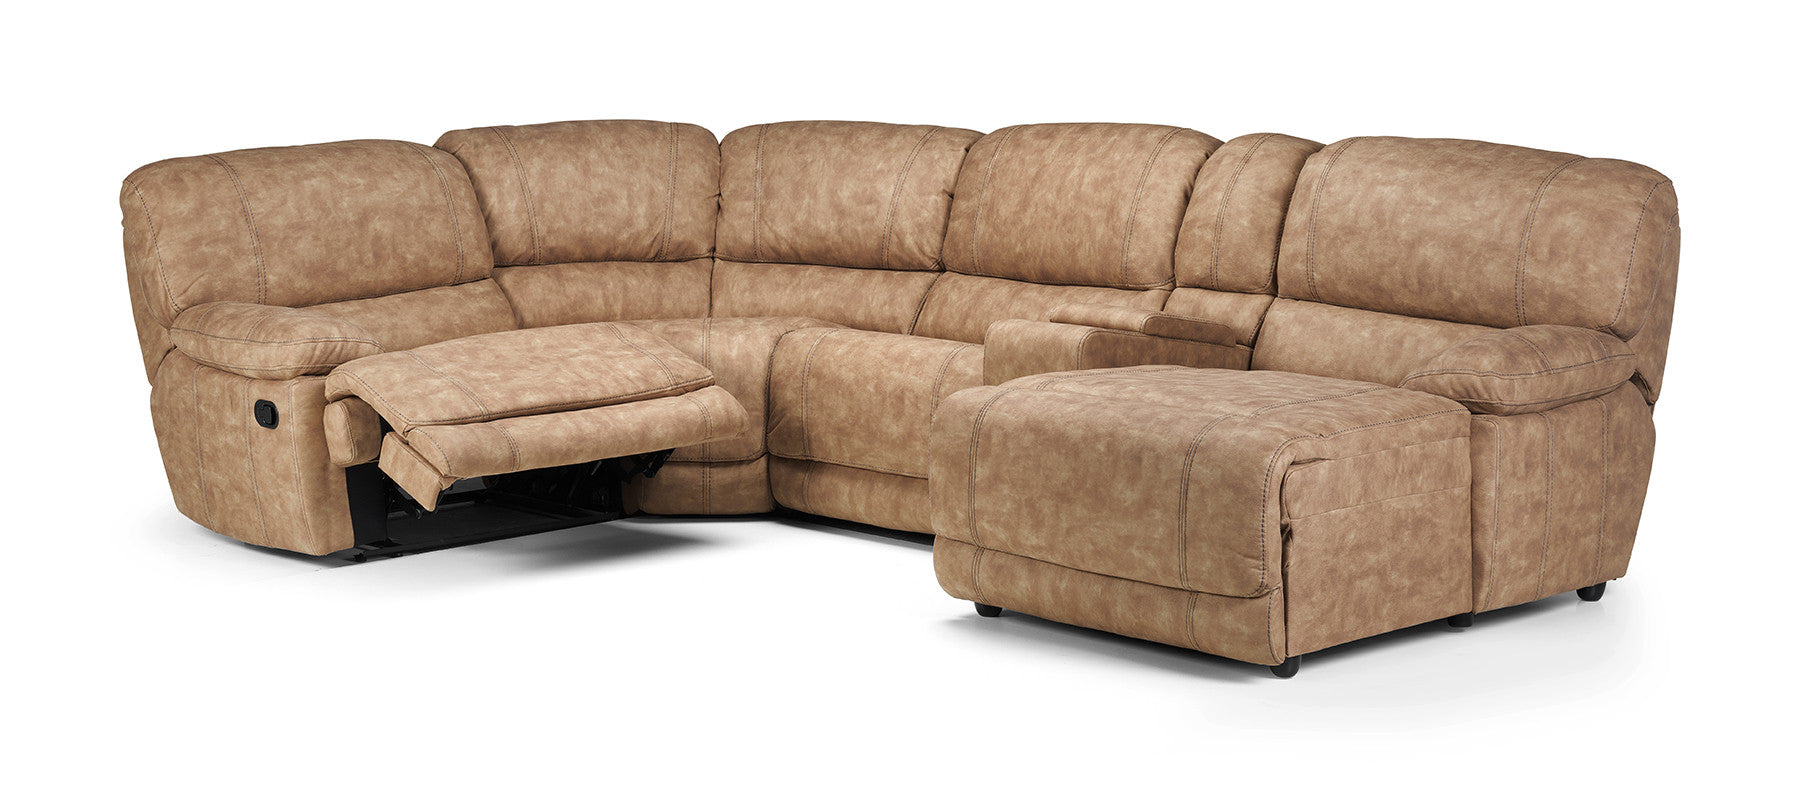 Recliner Sofas in Worksop